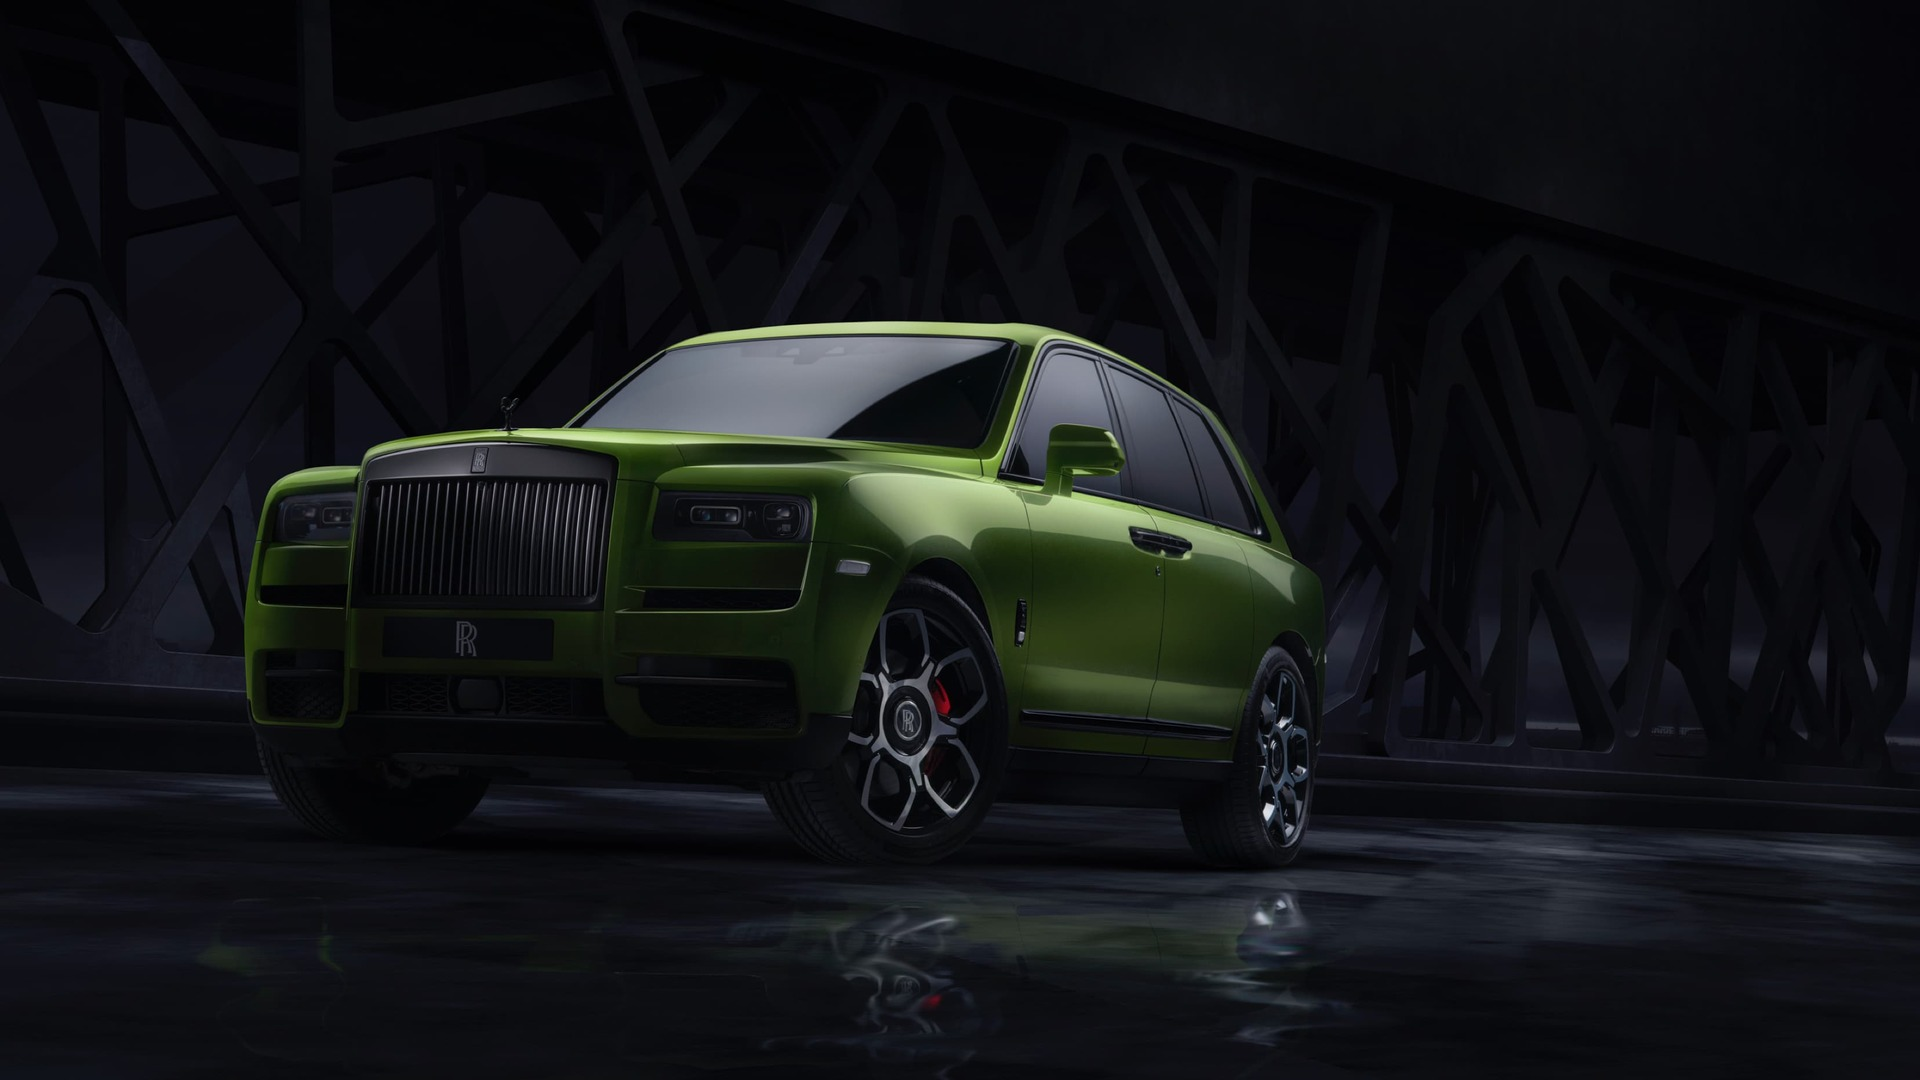 Front view of the Rolls-Royce Cullinan in green.